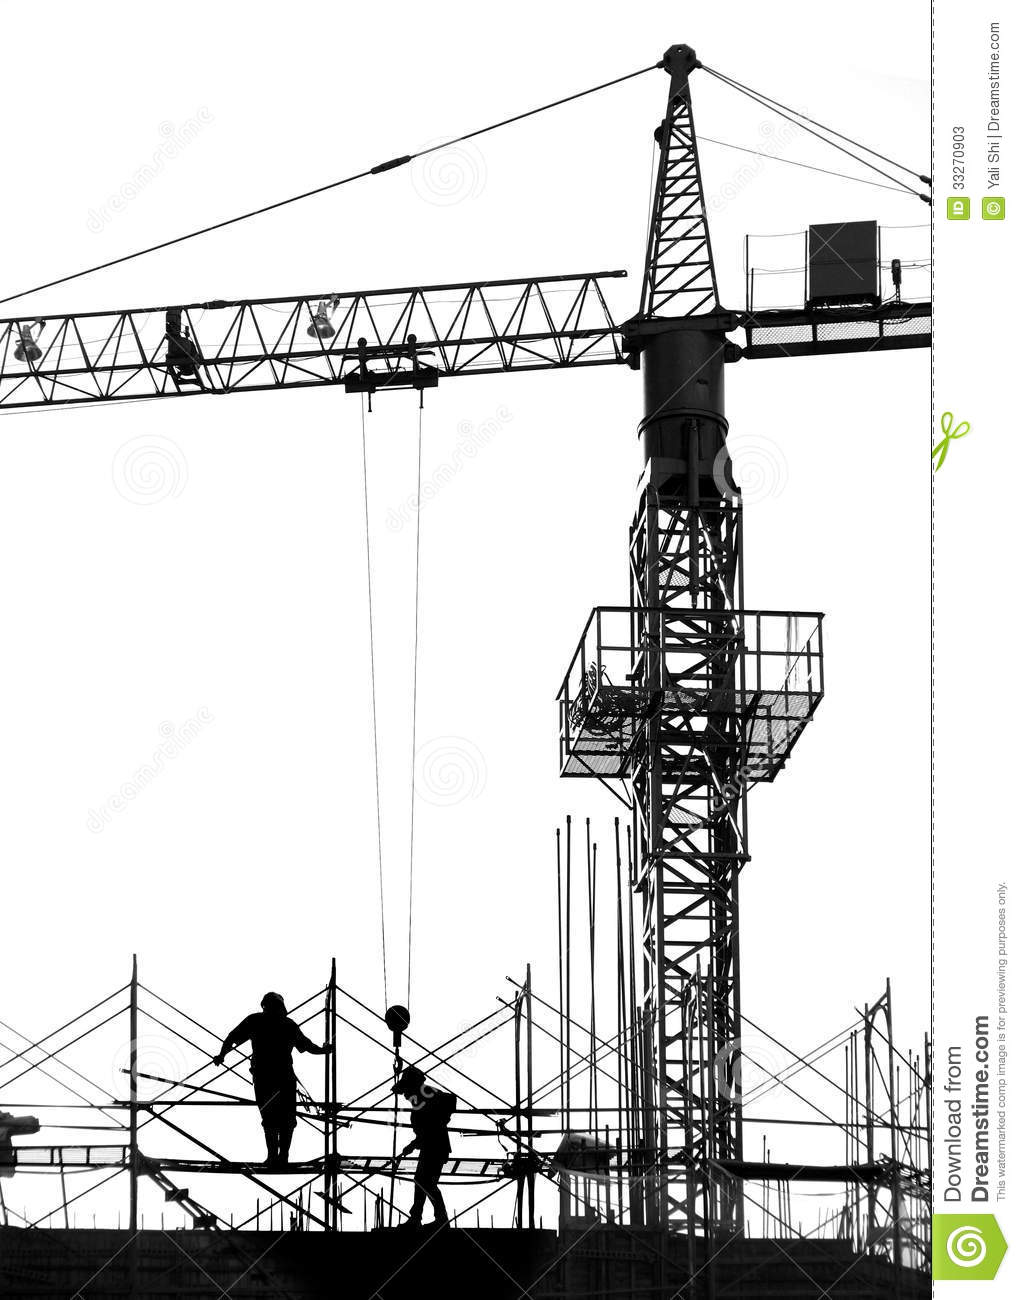 Construction site with crane and scaffolding seen as a silhouette.